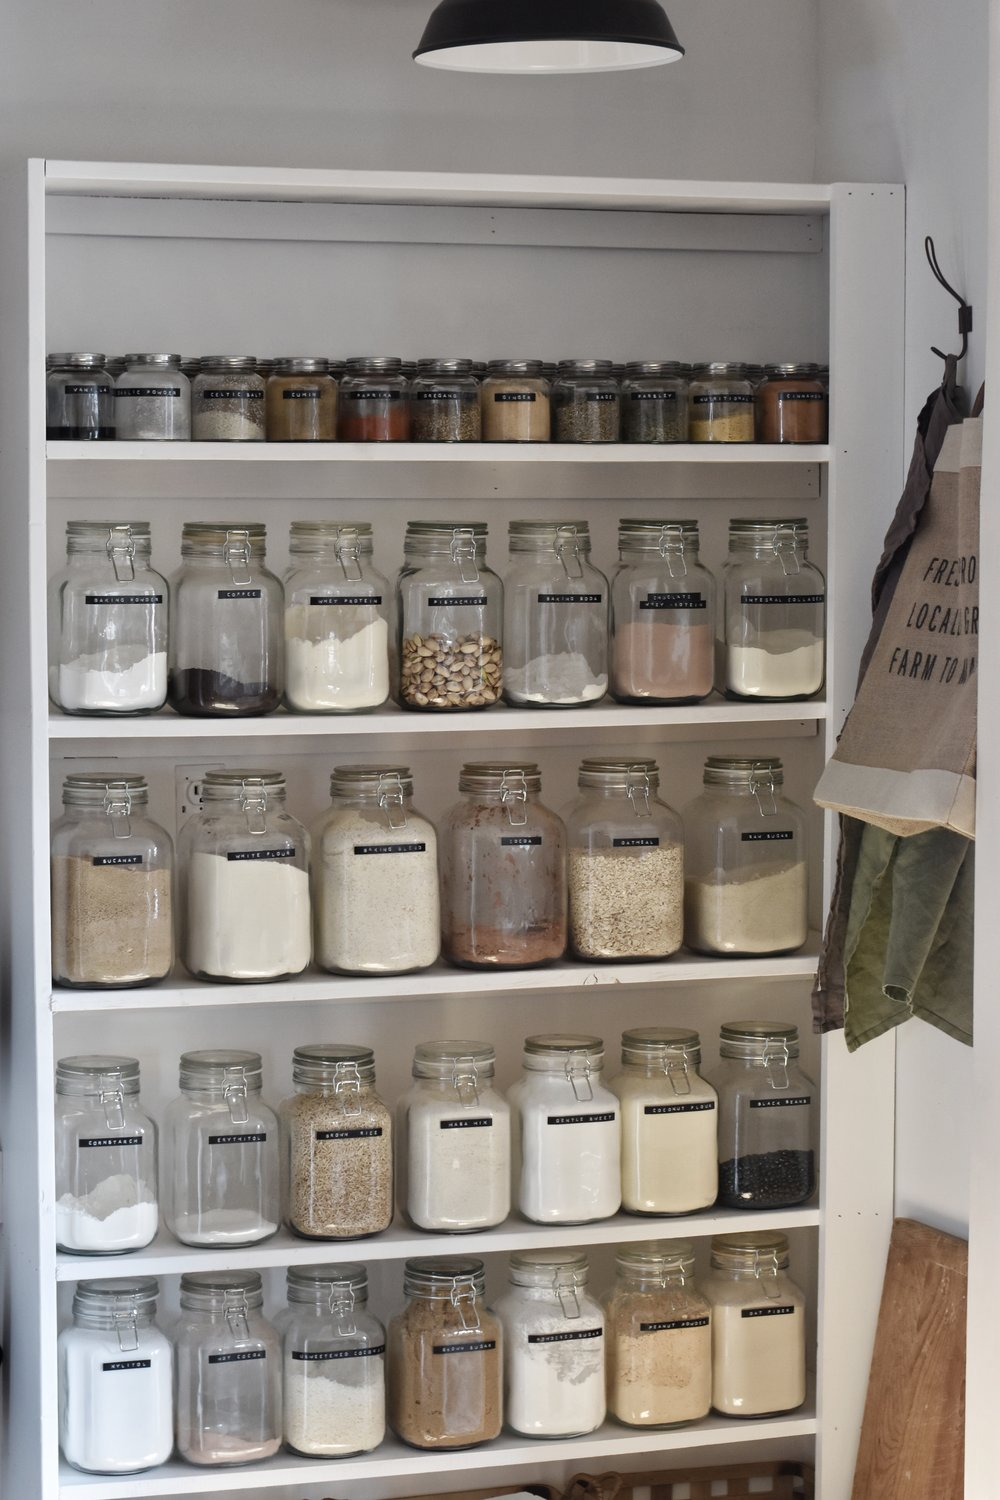 A well organized pantry filled with jars of spices and herbs to create healthy meals | Rocky Hedge Farm